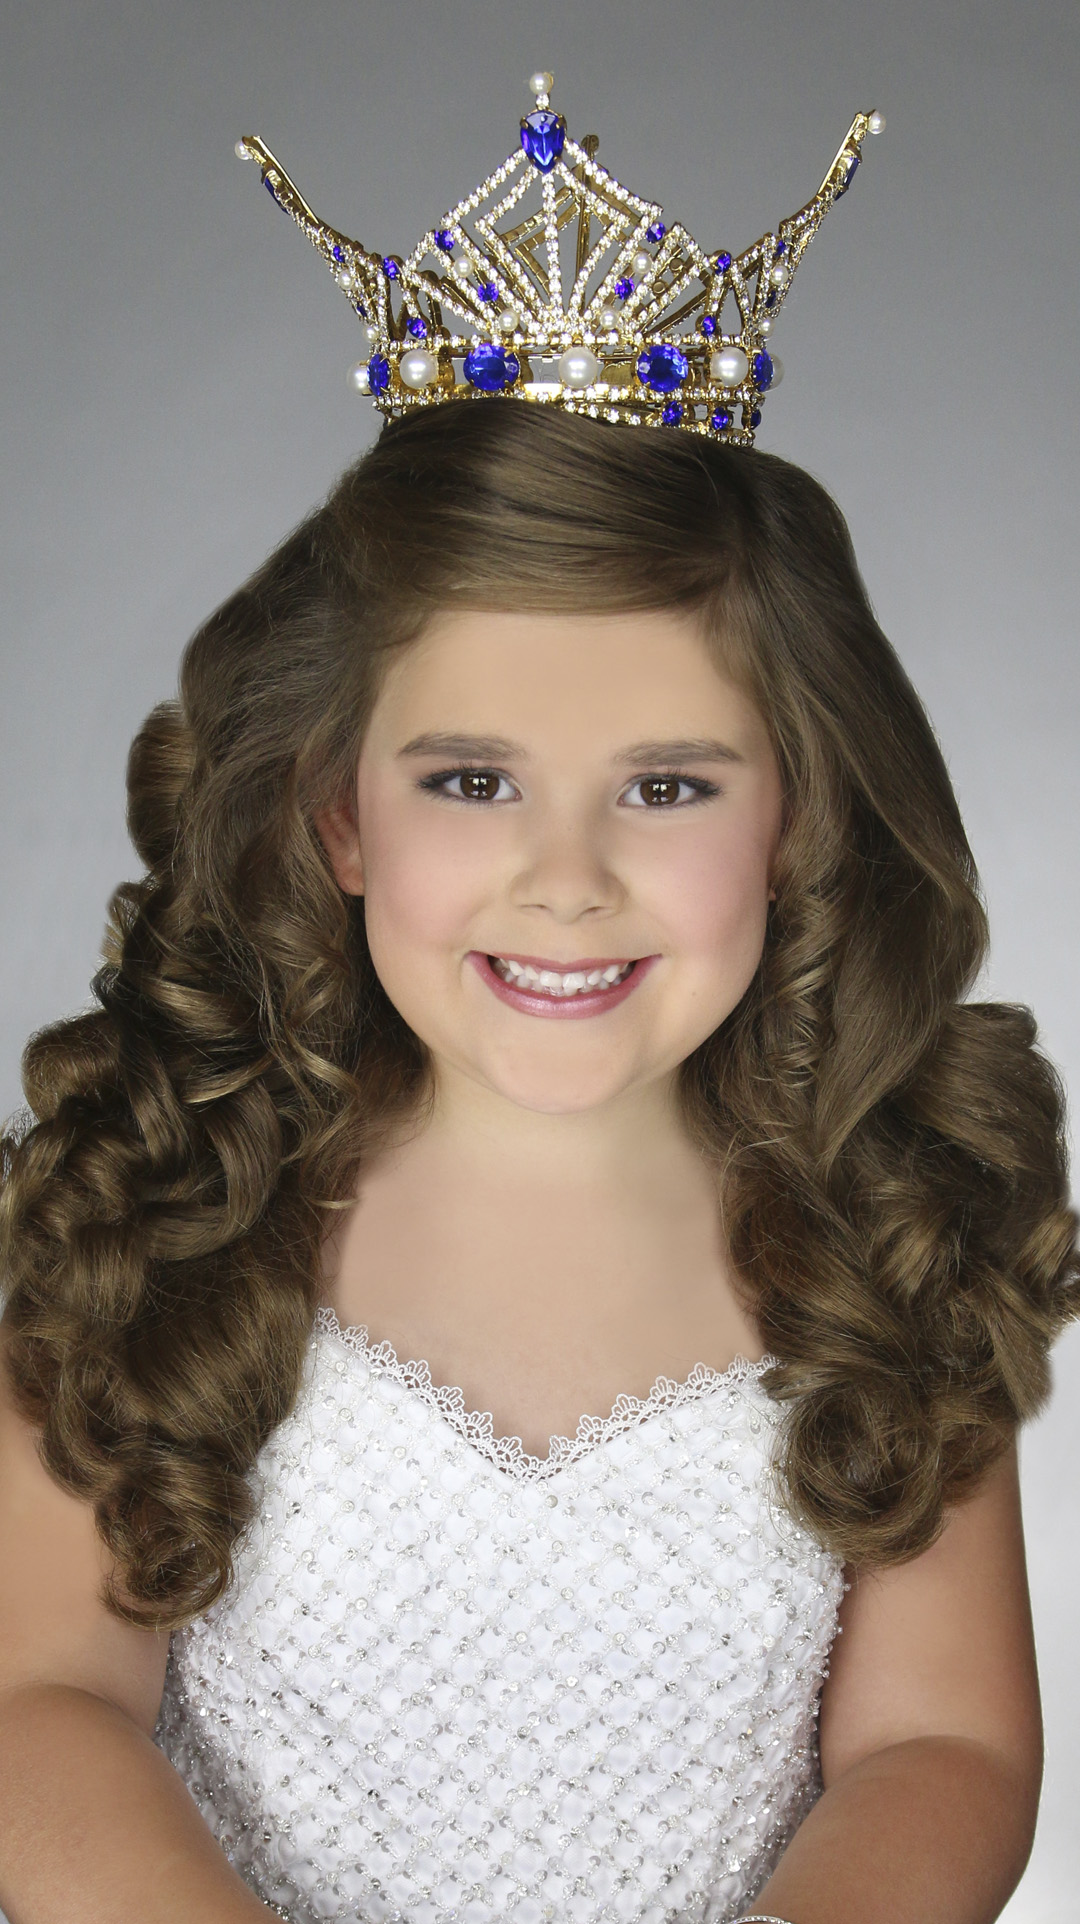 Tiny Miss North Carolina